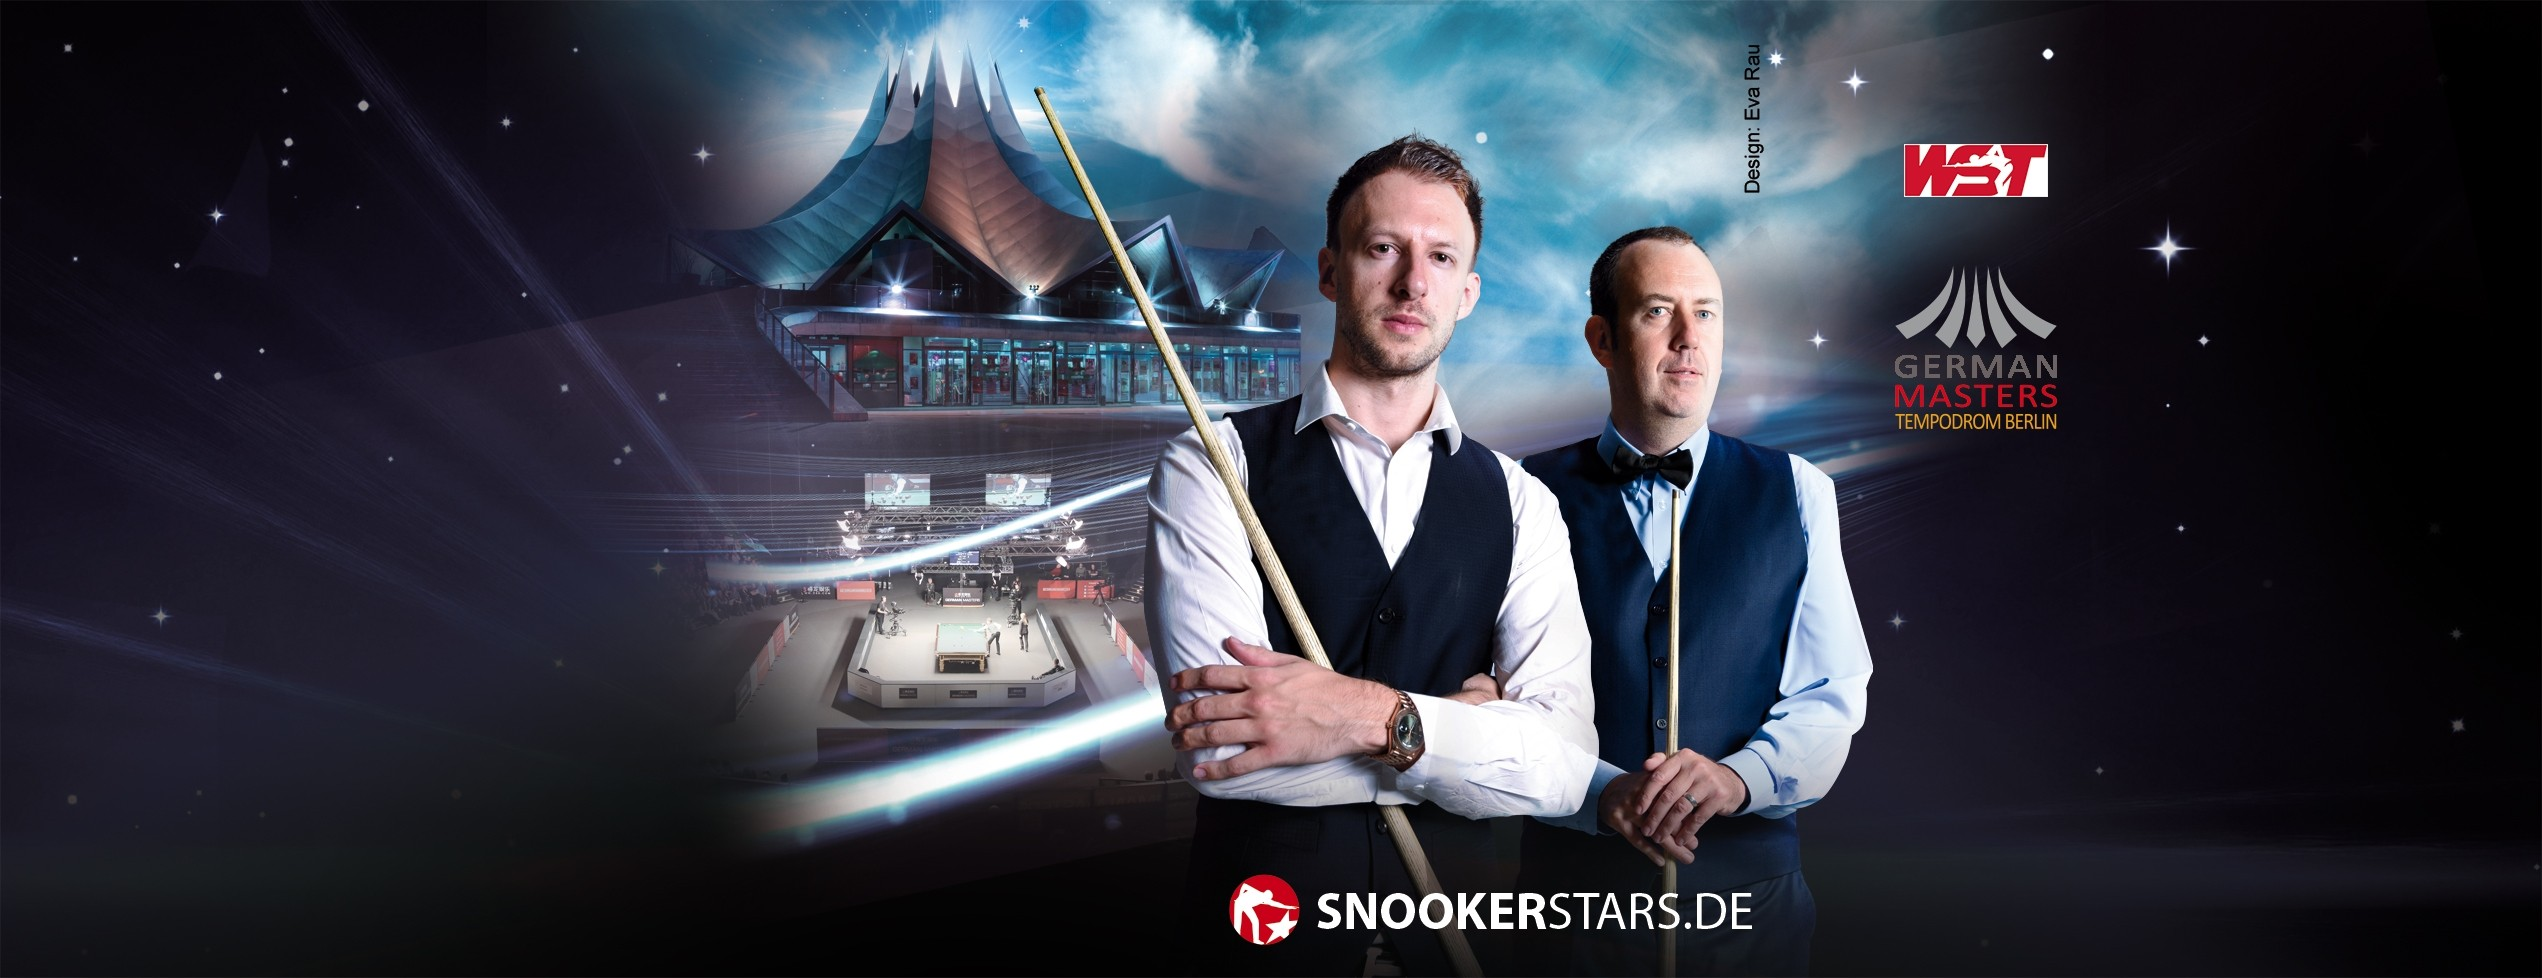 German Masters 31.01.2021 KAT 2 alle 2 Sessions